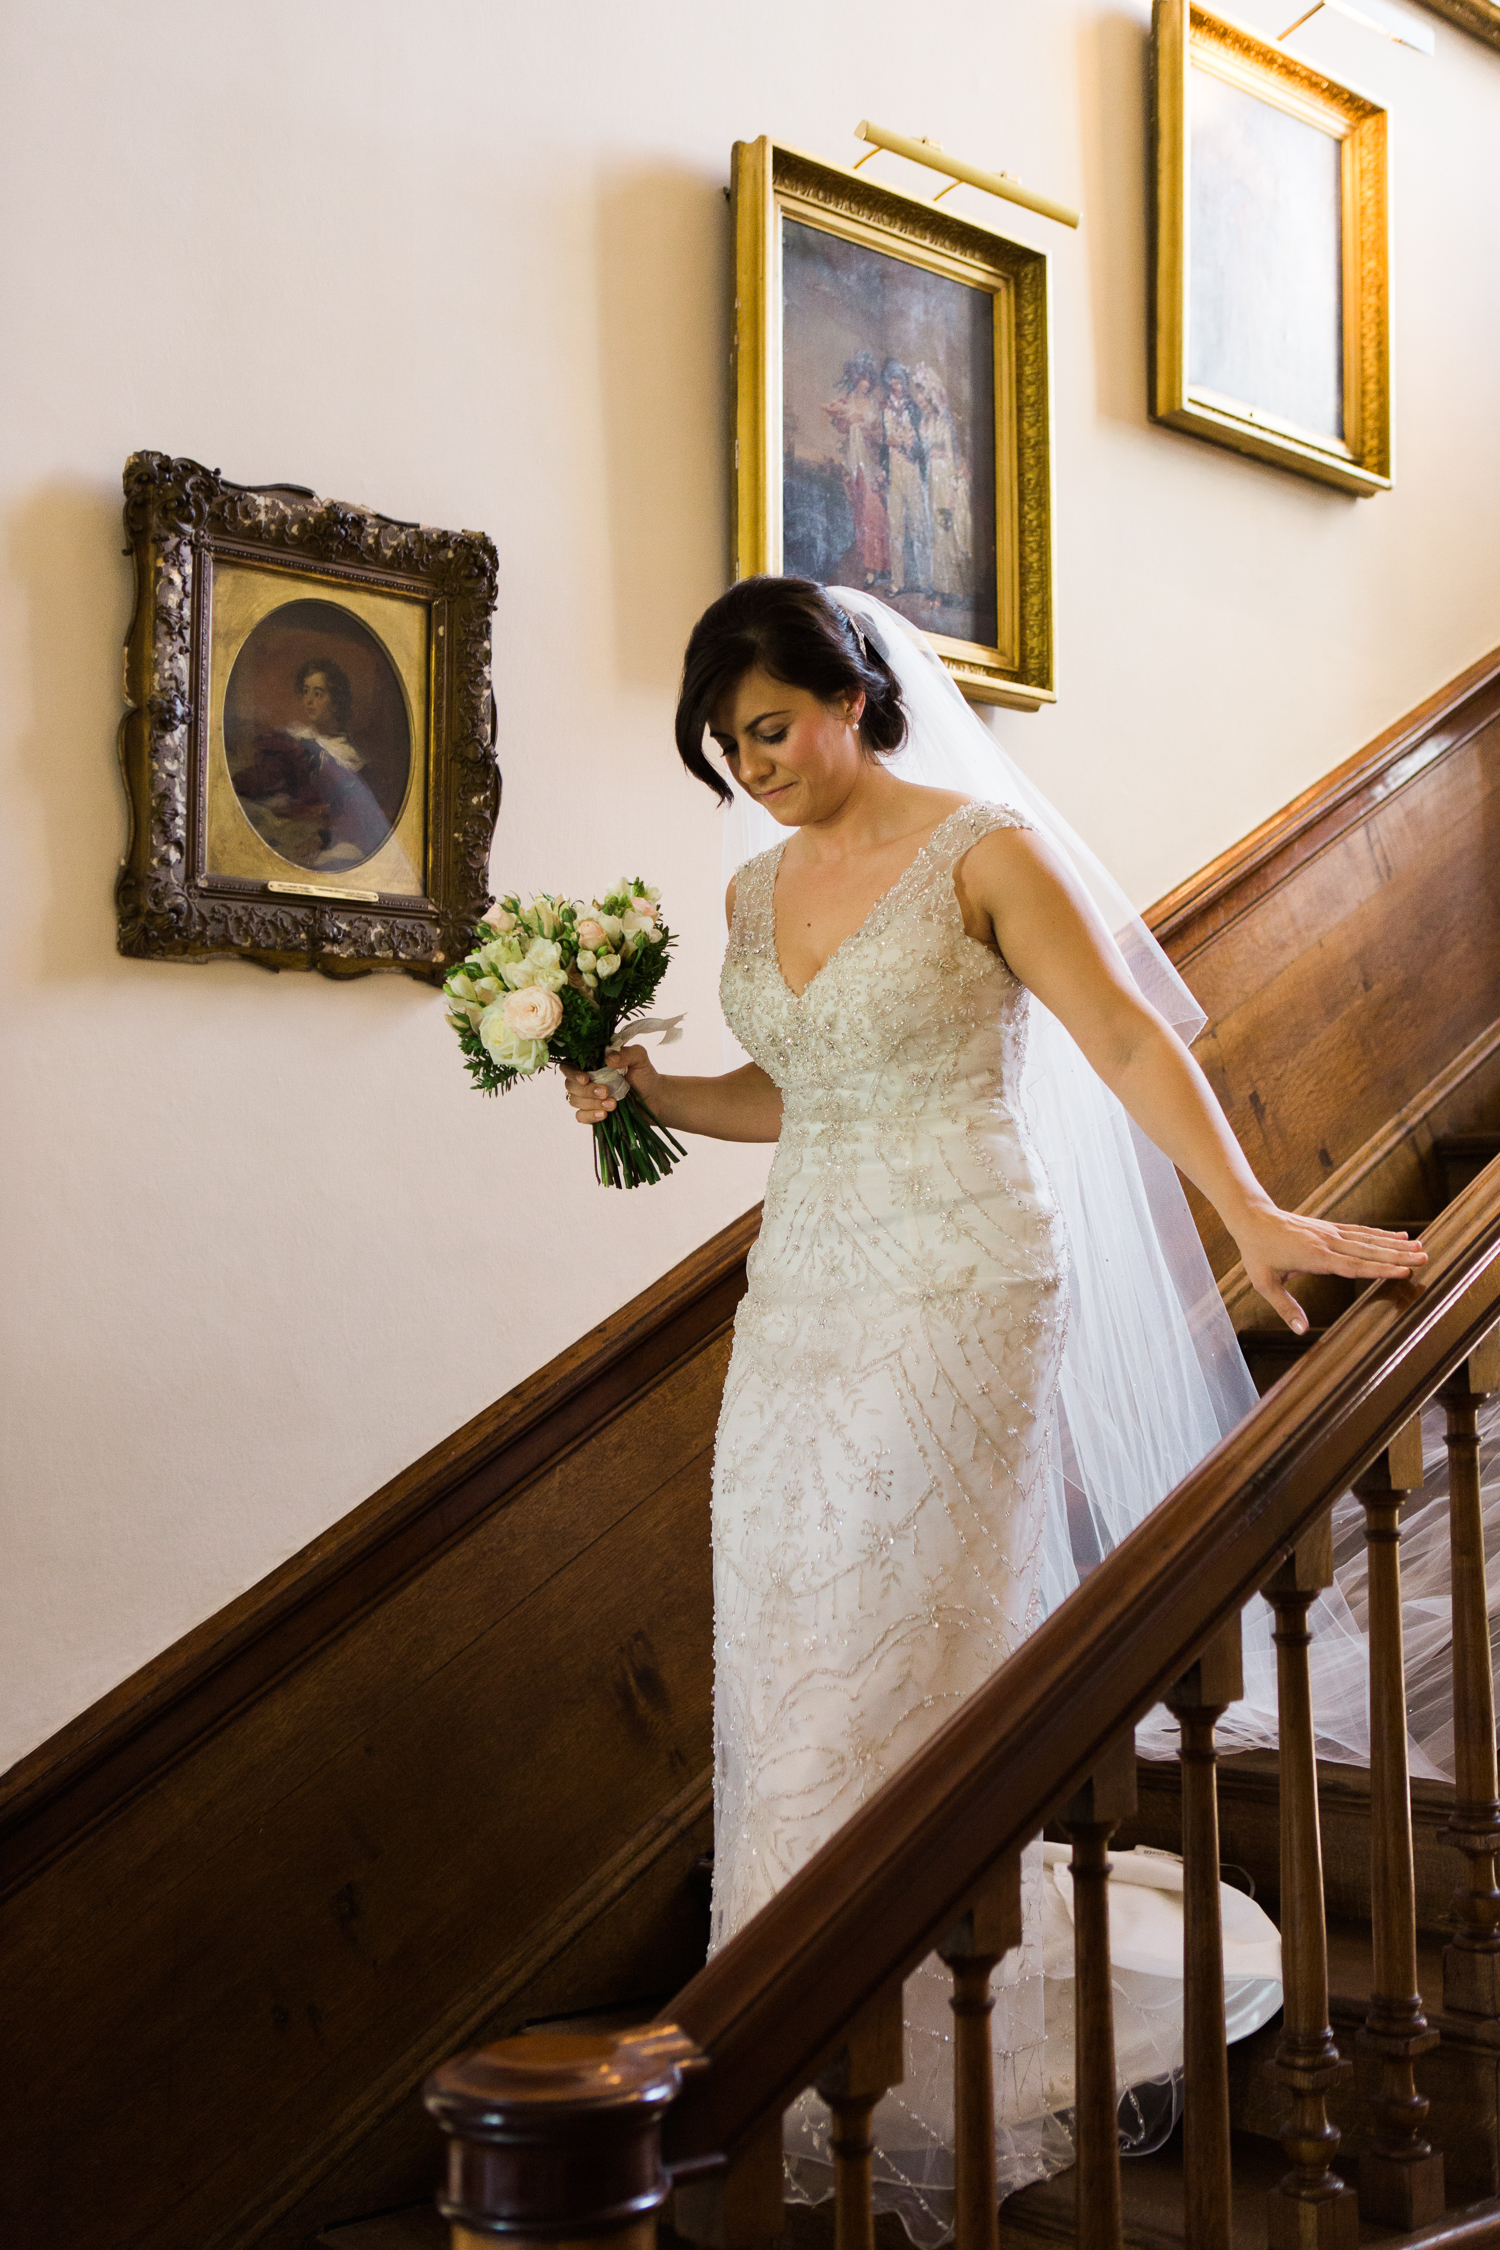 Bride on staircase at Iscoyd Park wedding photo